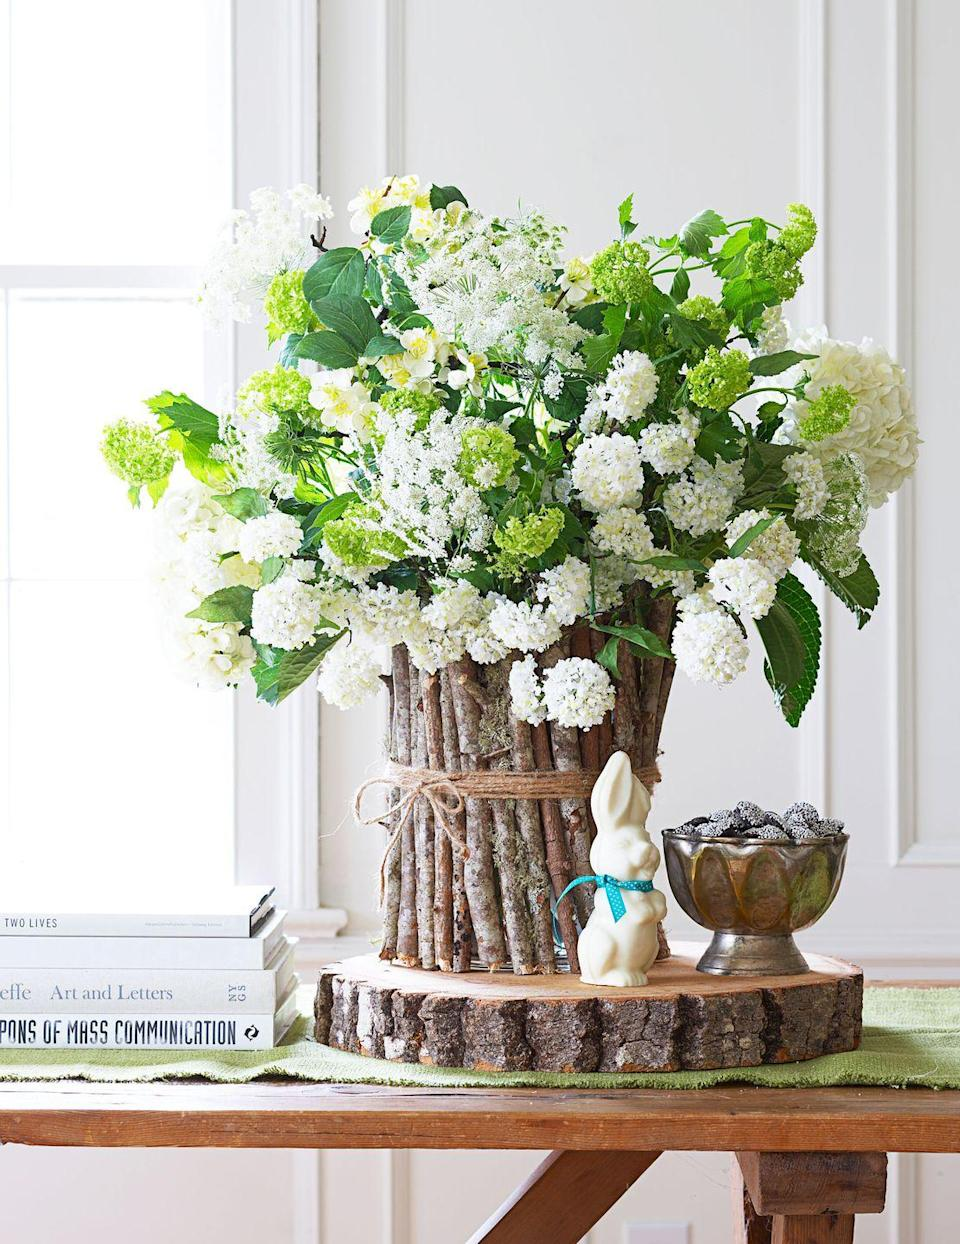 """<p>A woodsy vase echoes these flowers' country-garden vibe. For the container, cut 30 to 40 twigs to the height of a glass vase, then lightly hot-glue them to its surface, a few inches at a time. Finish with jute twine tied in a bow. For the flowers, bundle the hydrangeas first, then insert Queen Anne's lace. Keep fresh by misting.</p><p><a class=""""link rapid-noclick-resp"""" href=""""https://www.amazon.com/TIAMALL-Natural-Twine-String-Packing/dp/B01HEPXEE2?tag=syn-yahoo-20&ascsubtag=%5Bartid%7C10055.g.2217%5Bsrc%7Cyahoo-us"""" rel=""""nofollow noopener"""" target=""""_blank"""" data-ylk=""""slk:BUY TWINE"""">BUY TWINE</a></p>"""